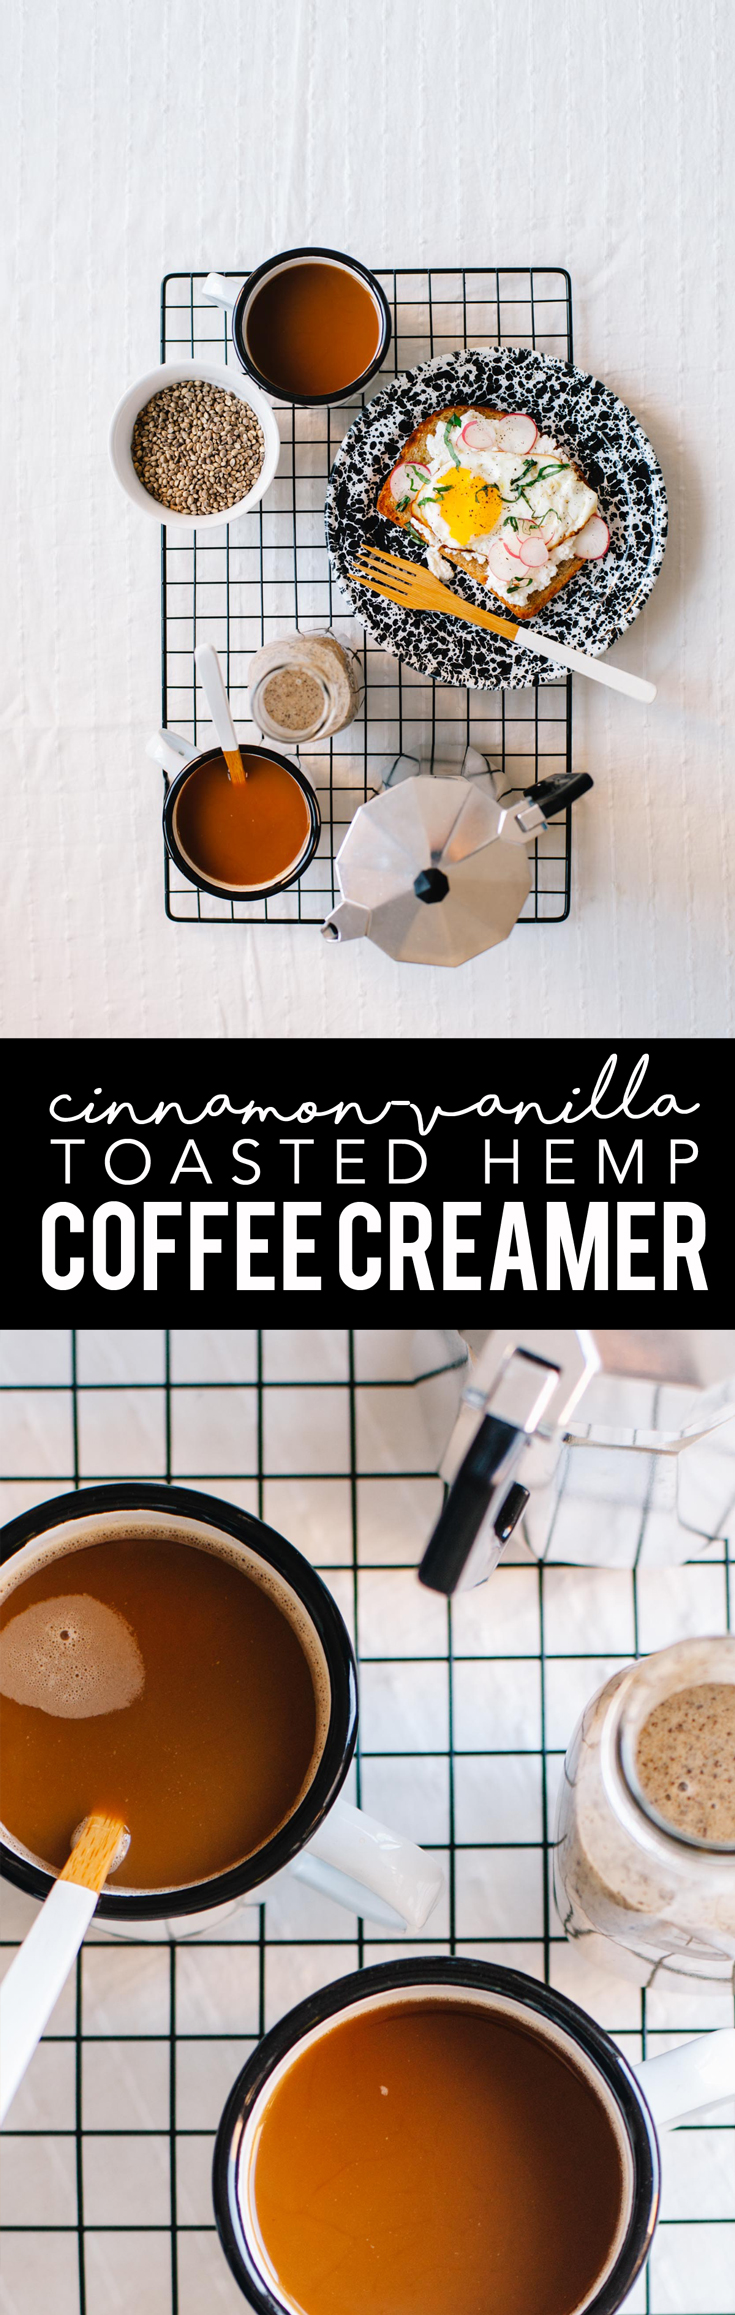 This Cinnamon Vanilla Toasted Hemp Coffee Creamer is totally non dairy, thick like creamer, and bold in flavor. It's the perfect healthy way to make a fancy cup of coffee at home! #coffee #creamer #vegan | Brewing Happiness